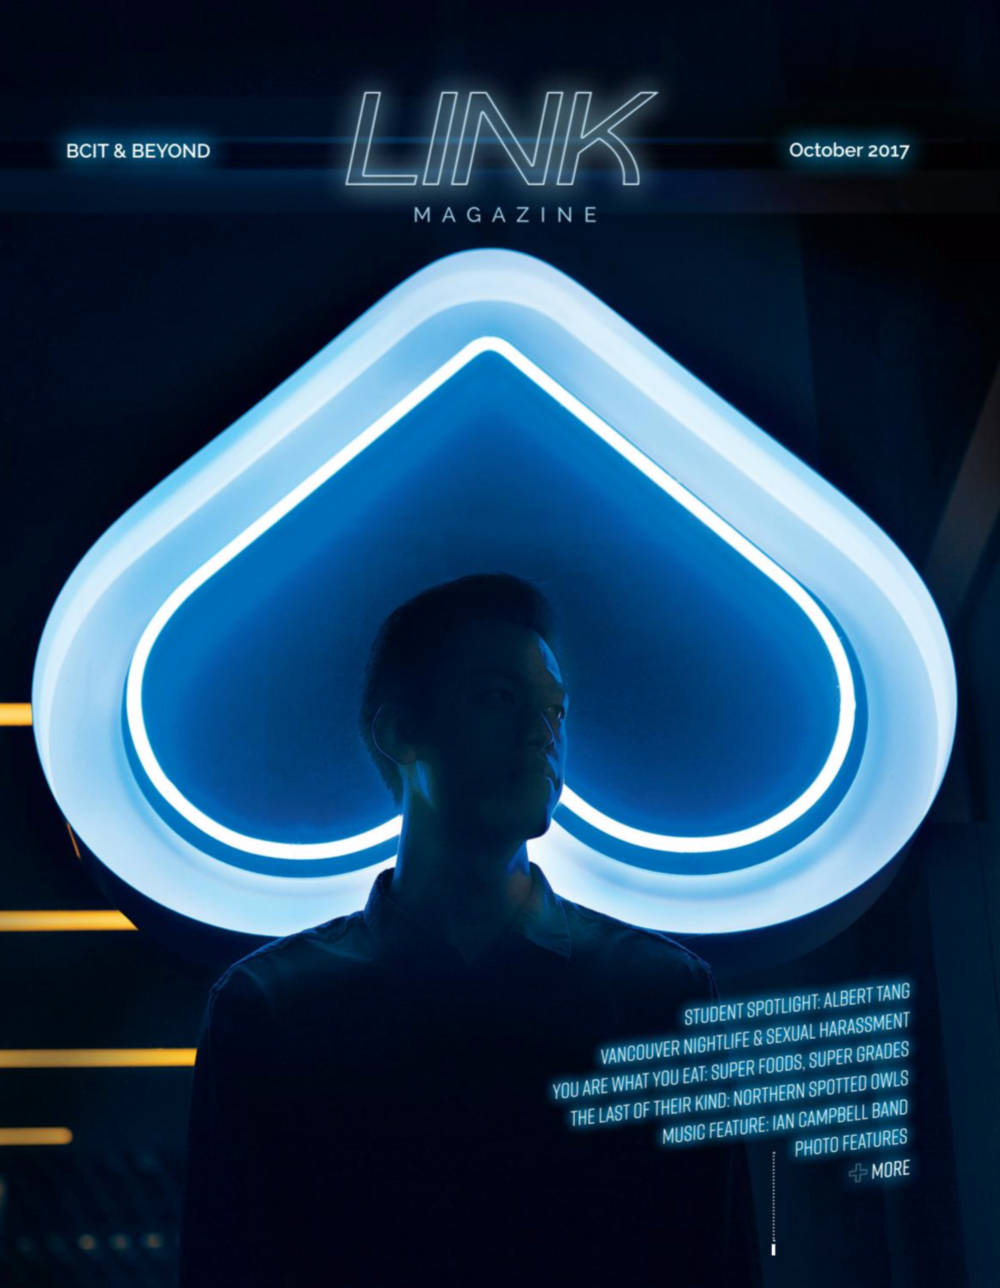 Cover design and photography of LINK's Student Spotlight, Albert Tang